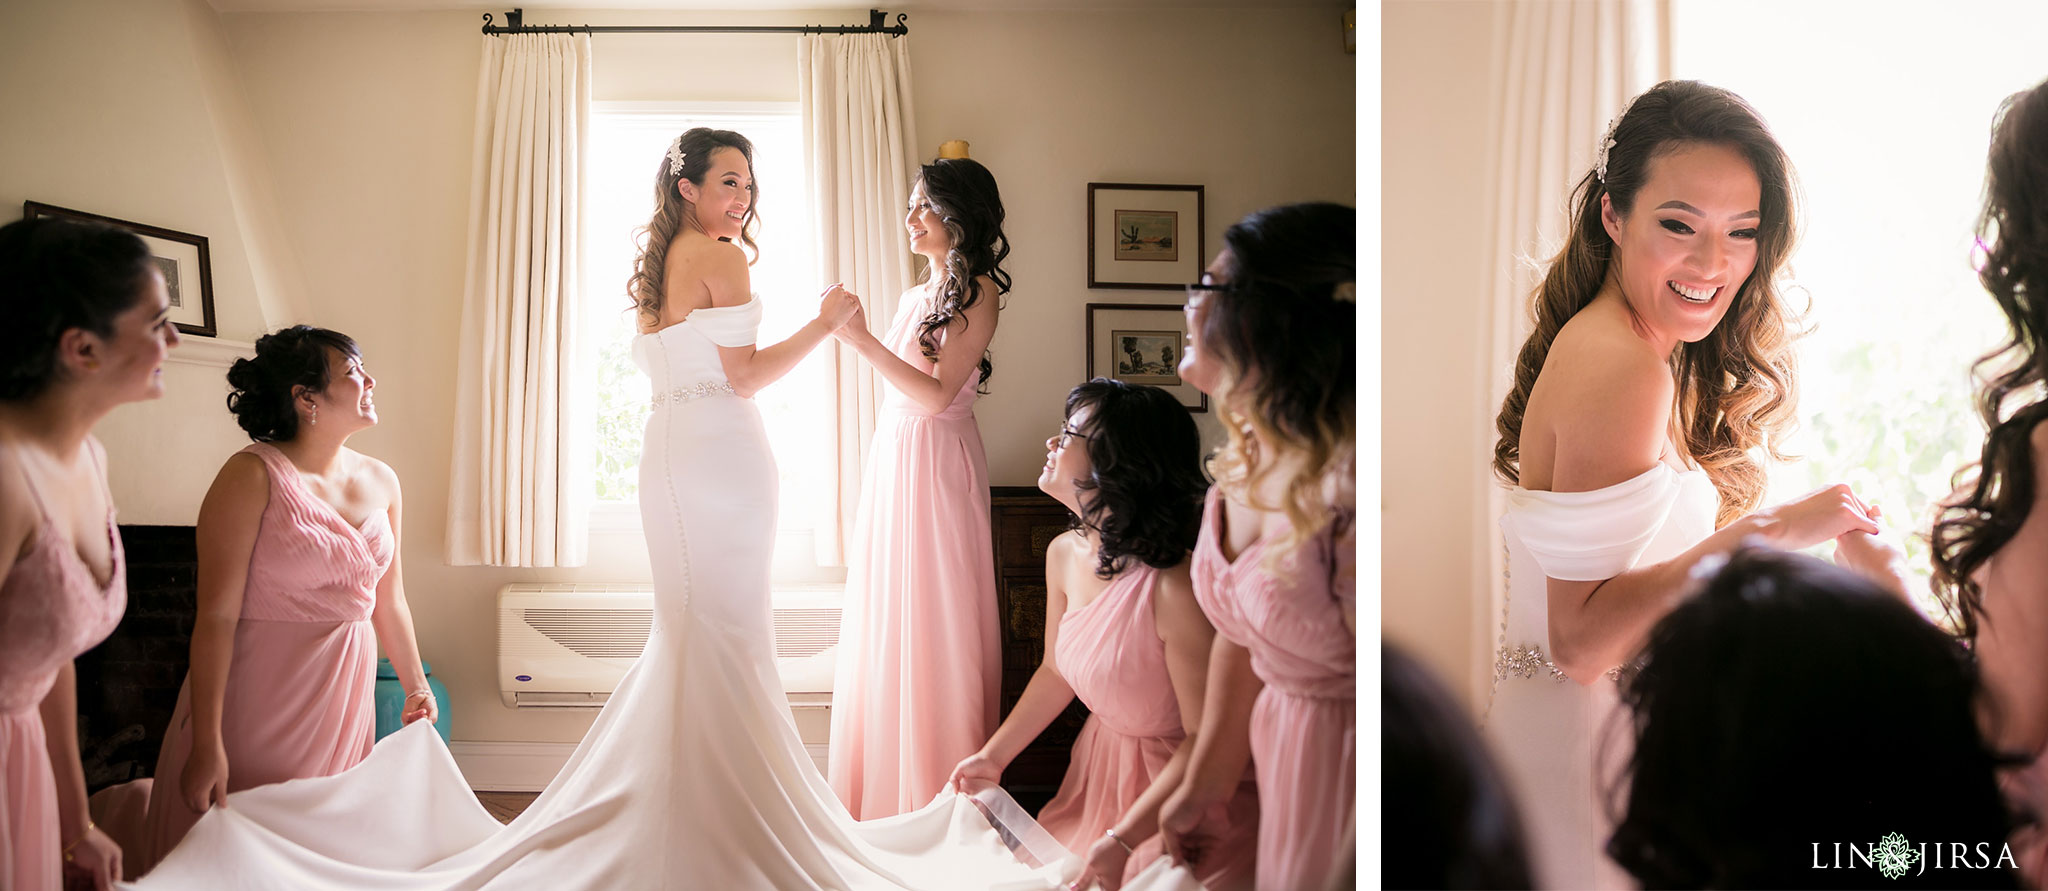 05 odonnell house palm springs bride wedding photography